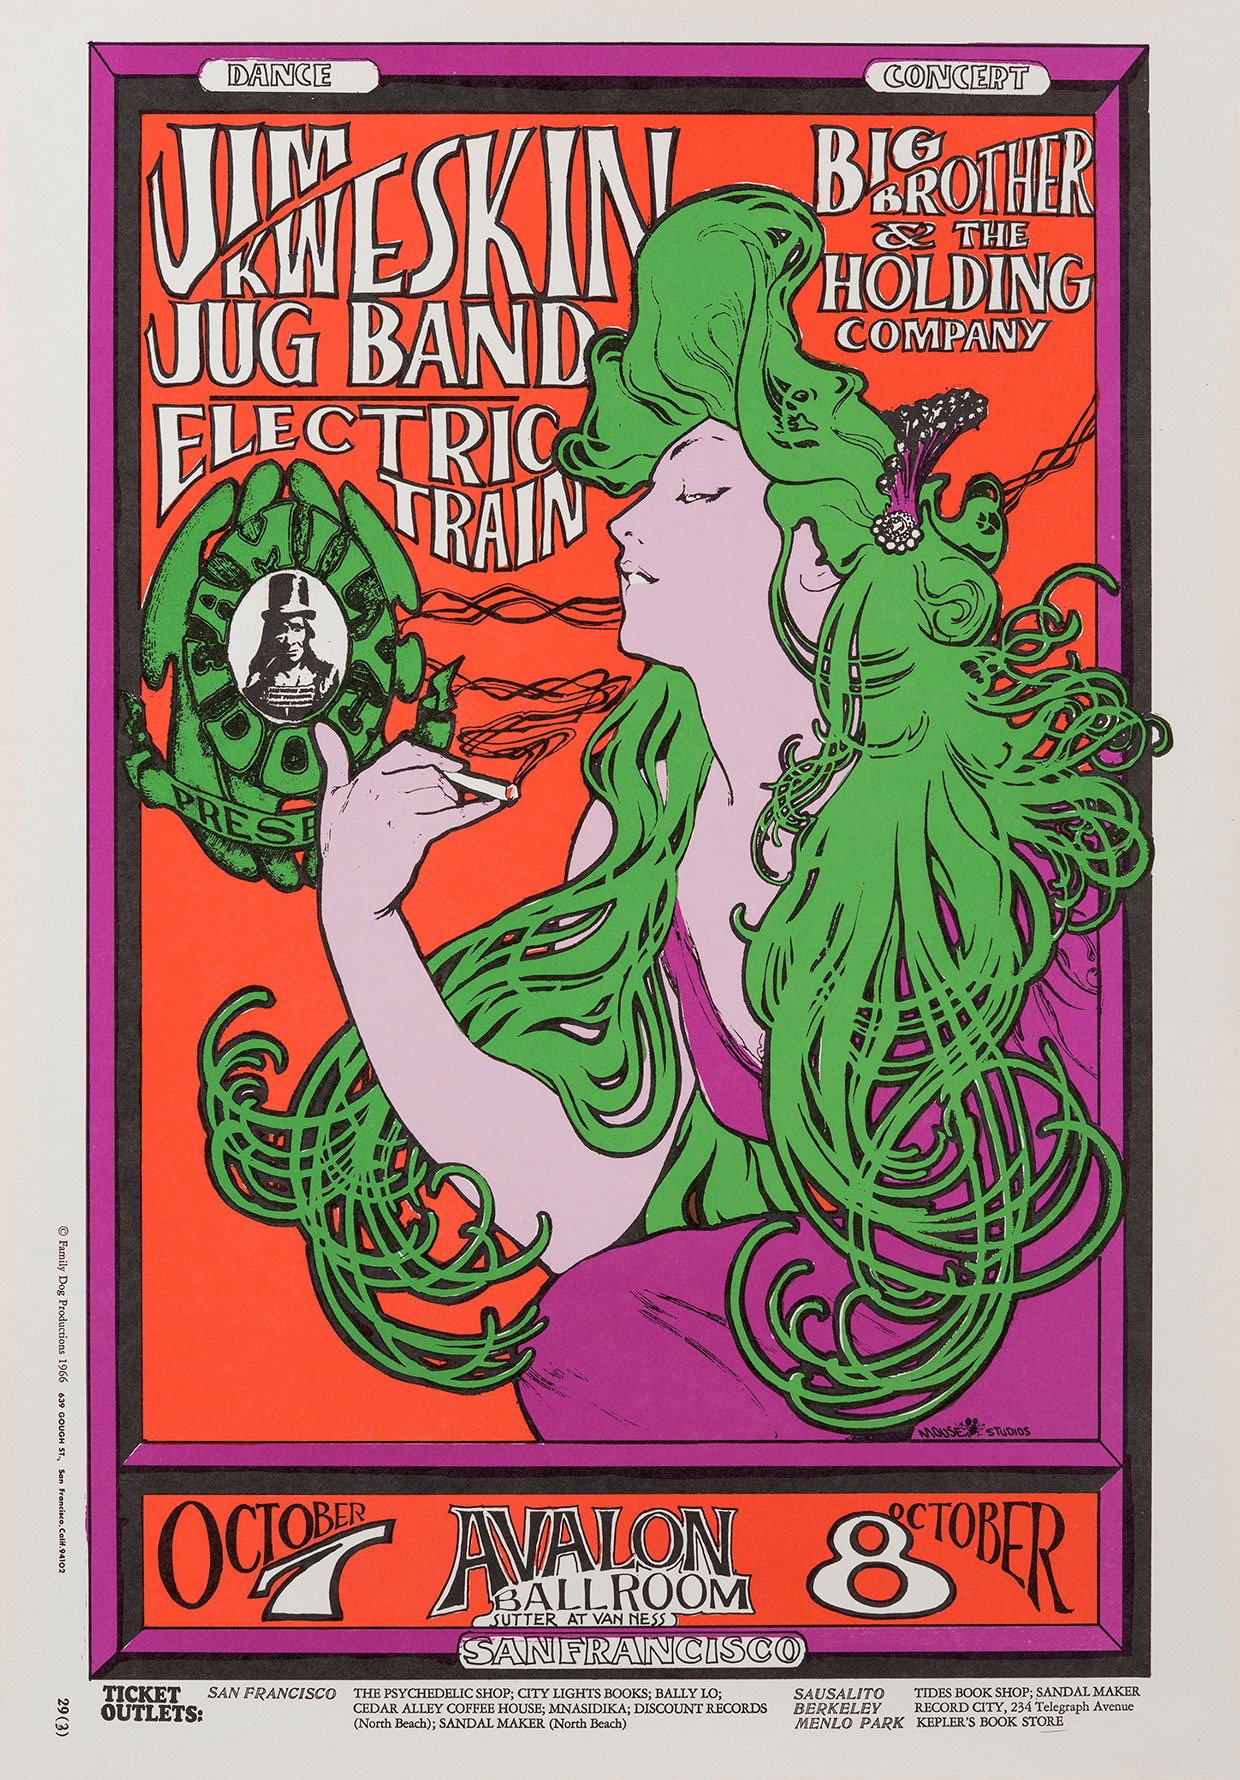 Jim Kweskin Jug Band – Avalon Ballroom, Oct 7-8 1966, Stanley Mouse and Alton Kelly © 1966, 1984, 1994 Rhino Entertainment Company. Used with permission. All rights reserved.